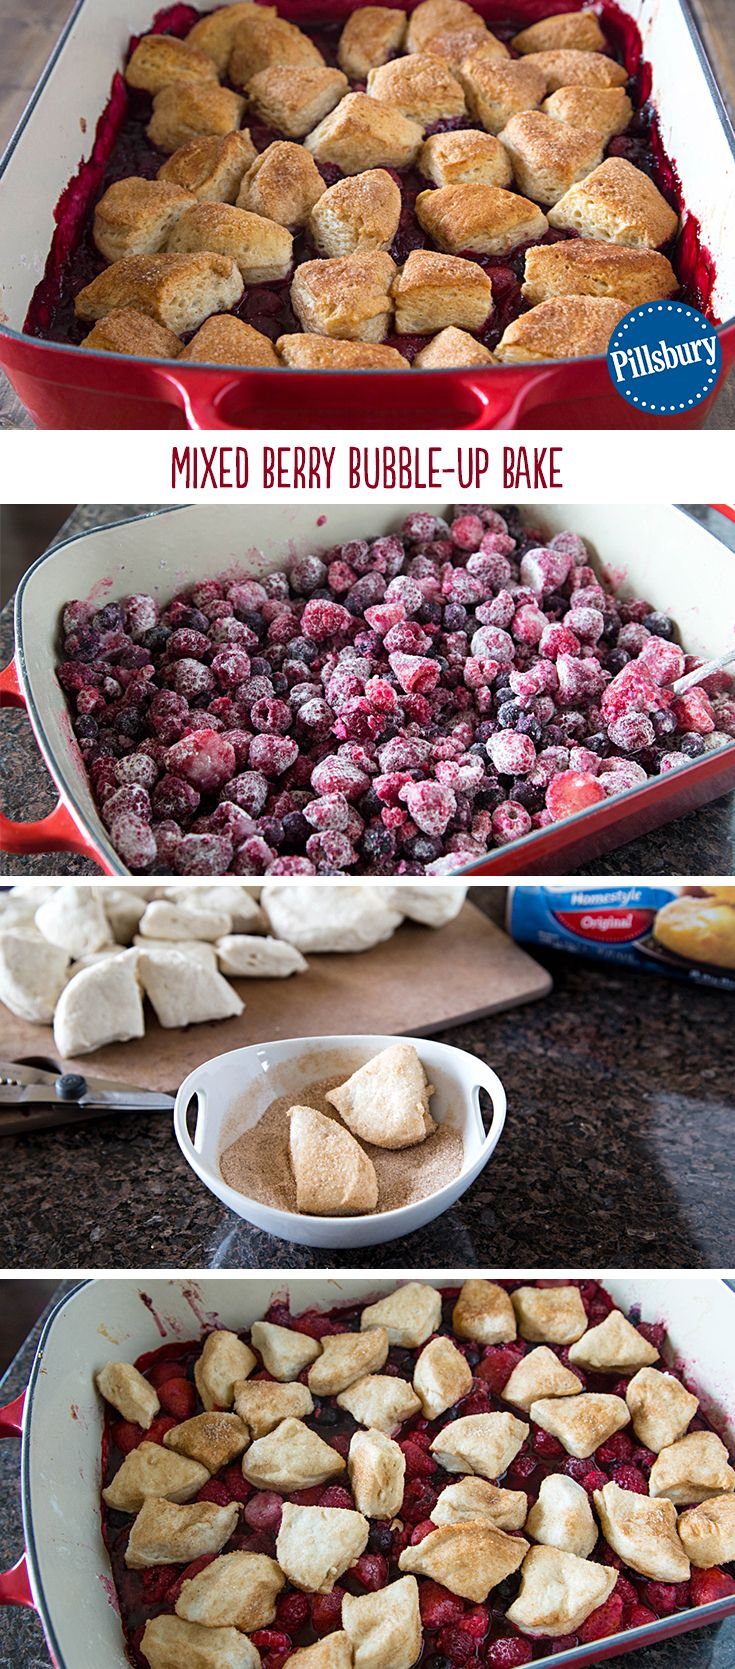 Sugar-cinnamon-coated biscuits take this Mixed Berry Bubble-Up Bake fruit cobbler over the top! It's easily made for a crowd. Mix it up by using your favorite in-season fruits and you're all set.